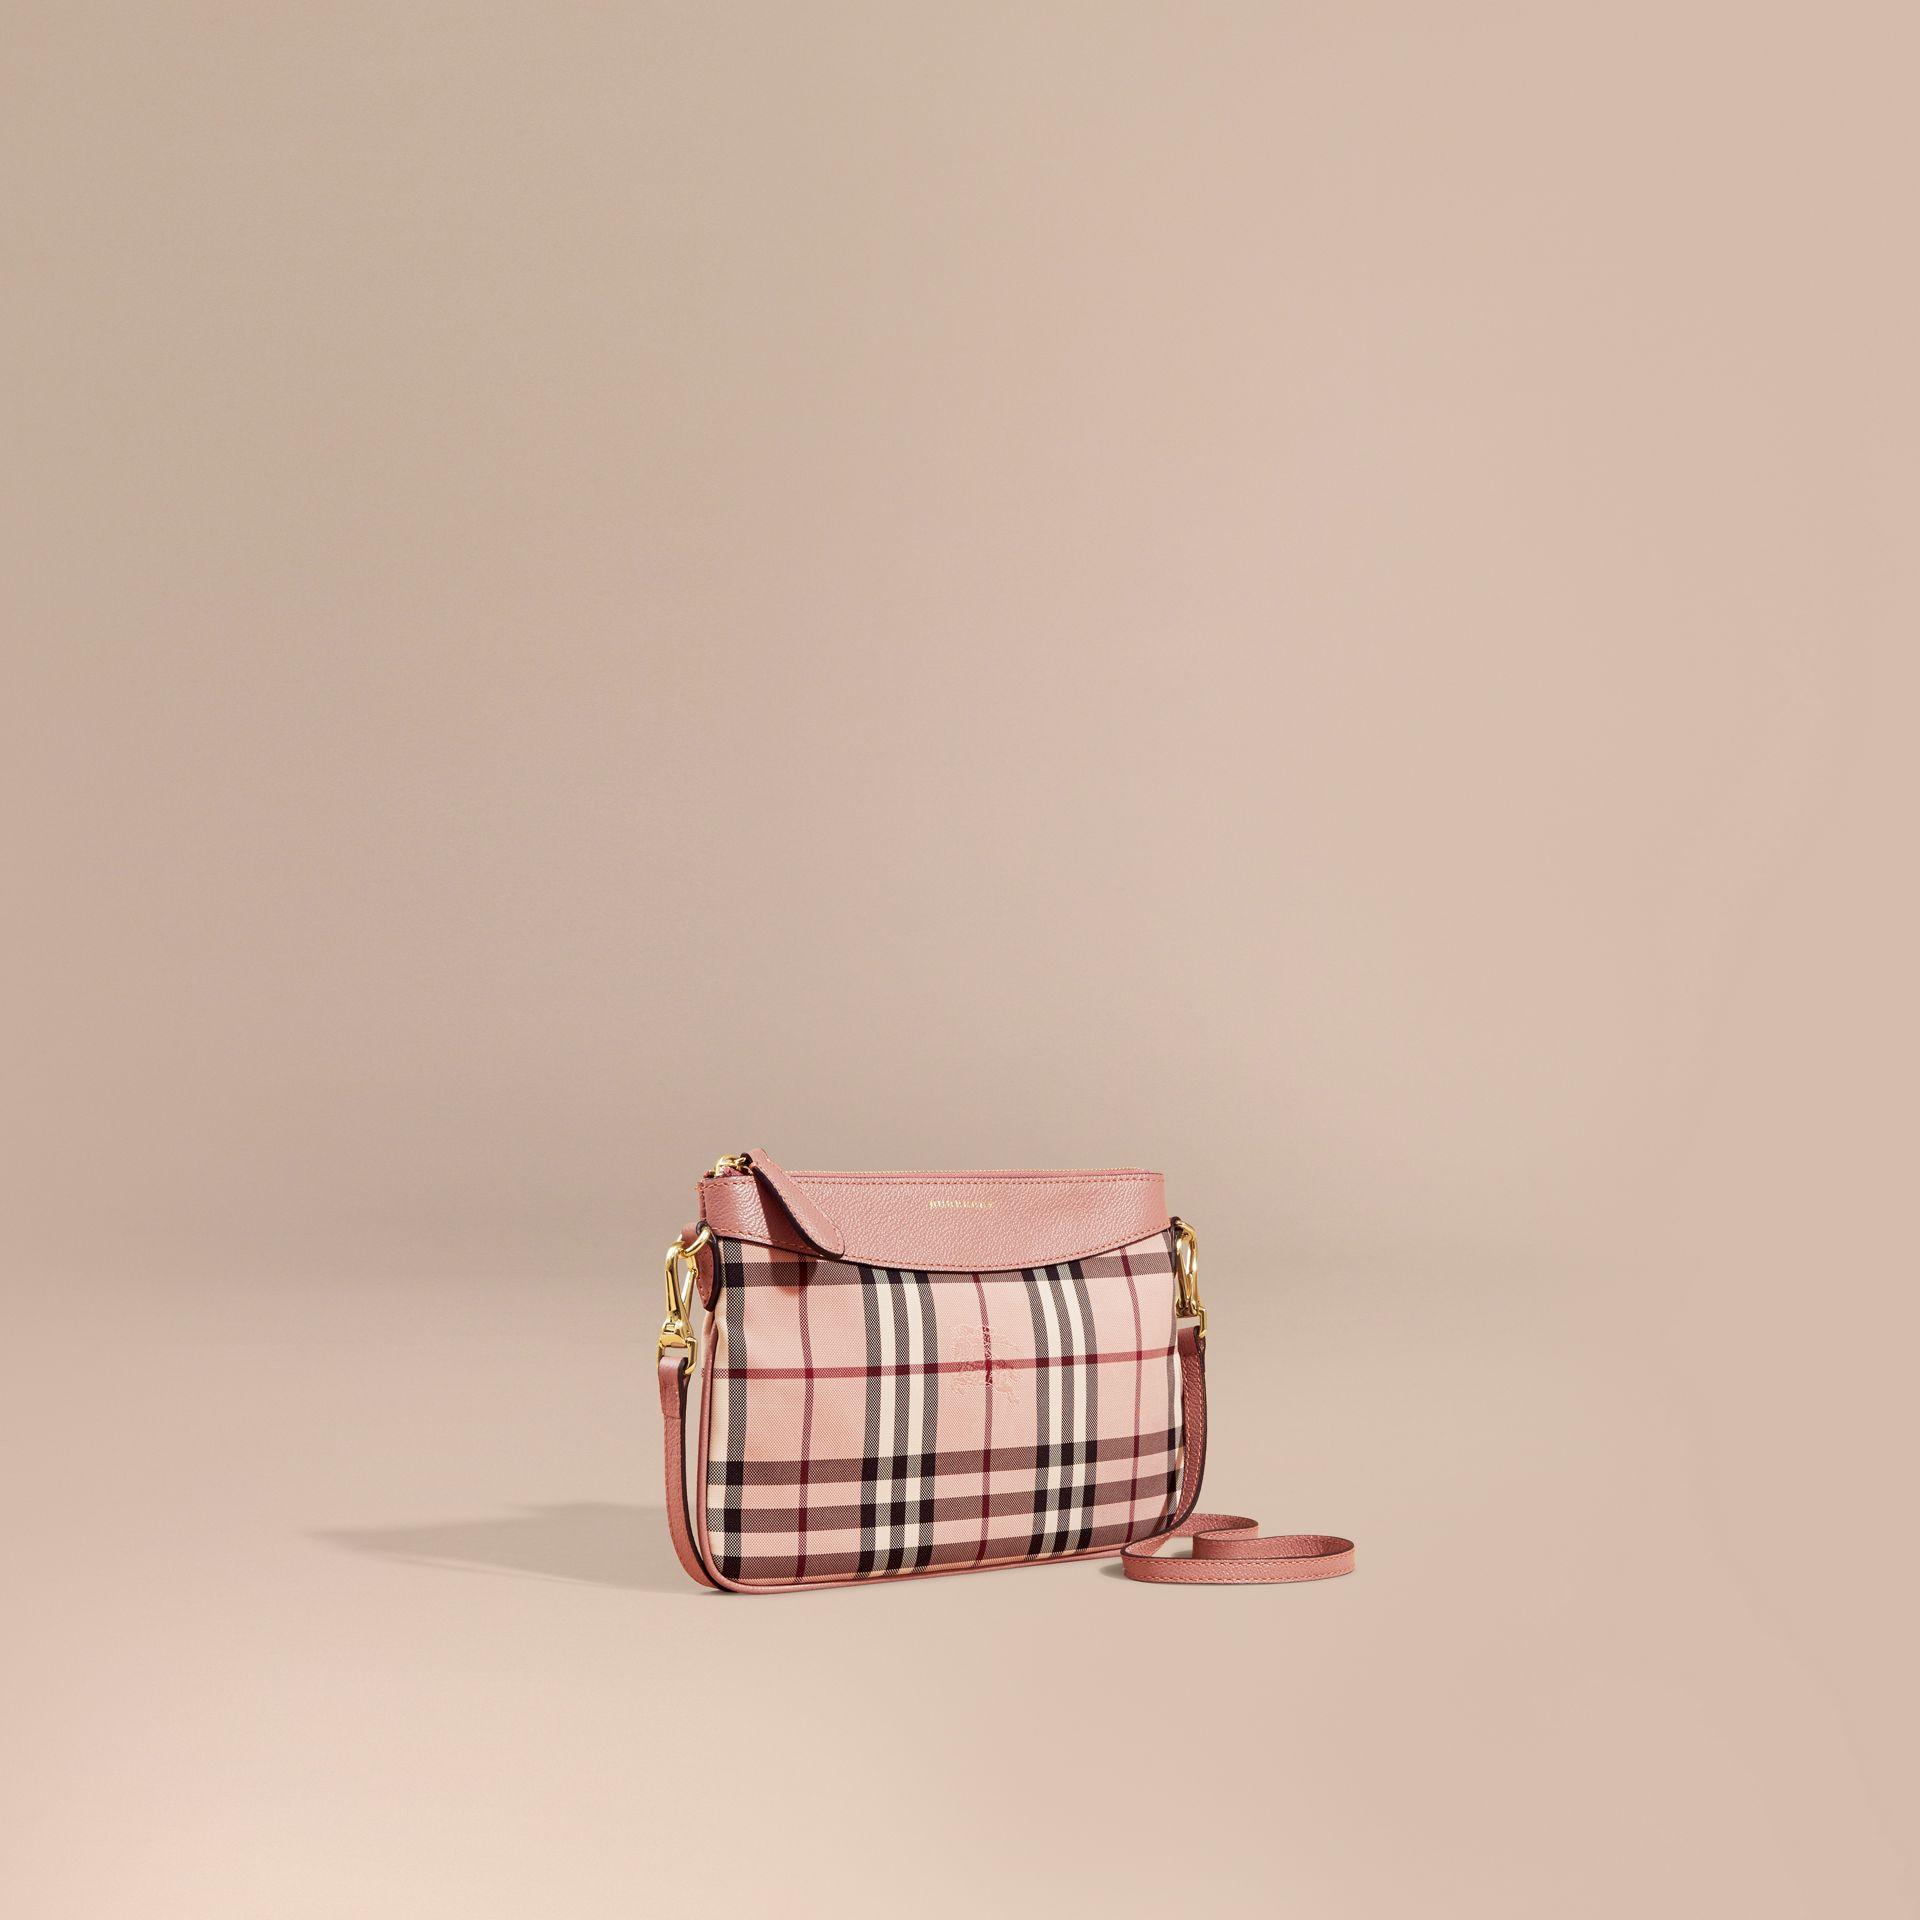 Ash rose/ dusty pink Horseferry Check and Leather Clutch Bag Ash Rose/ Dusty Pink - gallery image 1